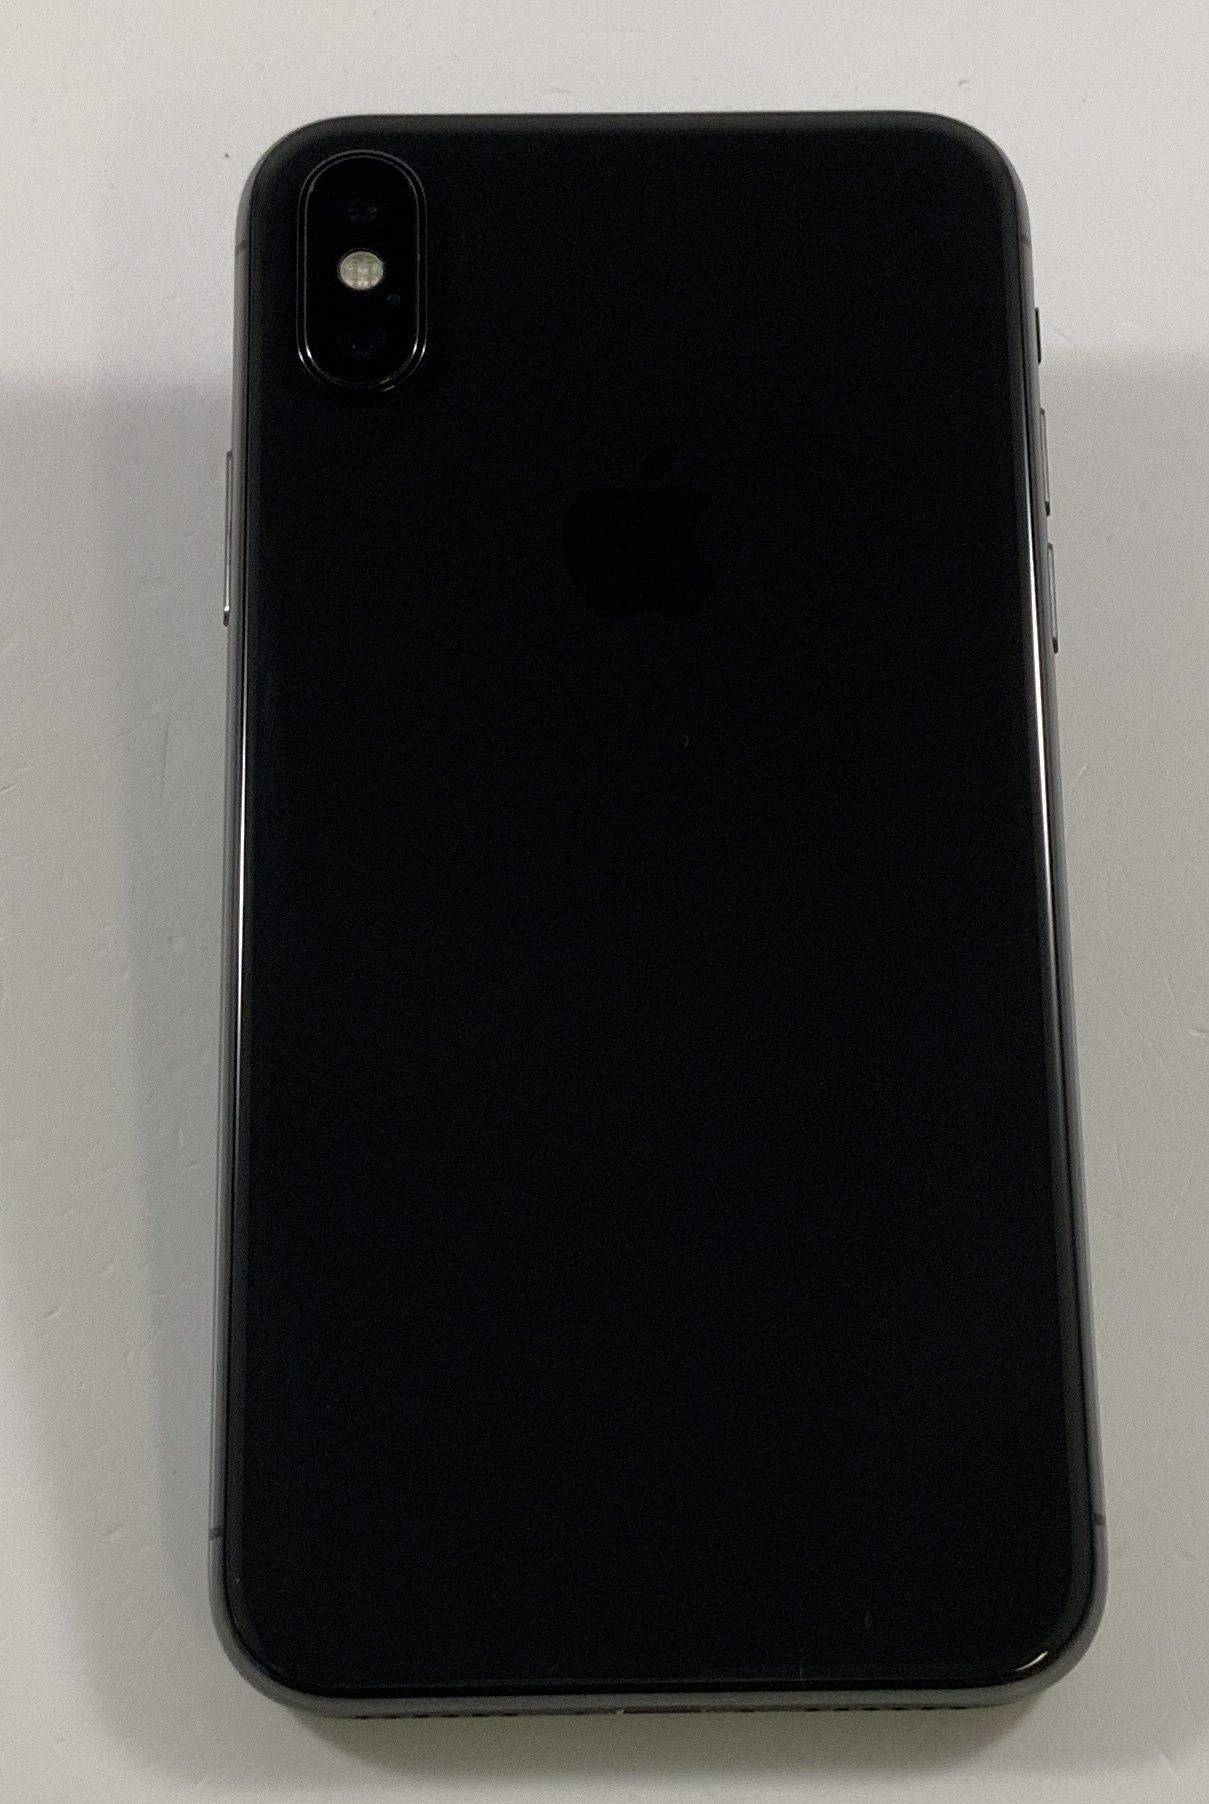 iPhone X 256GB, 256GB, Space Gray, image 2